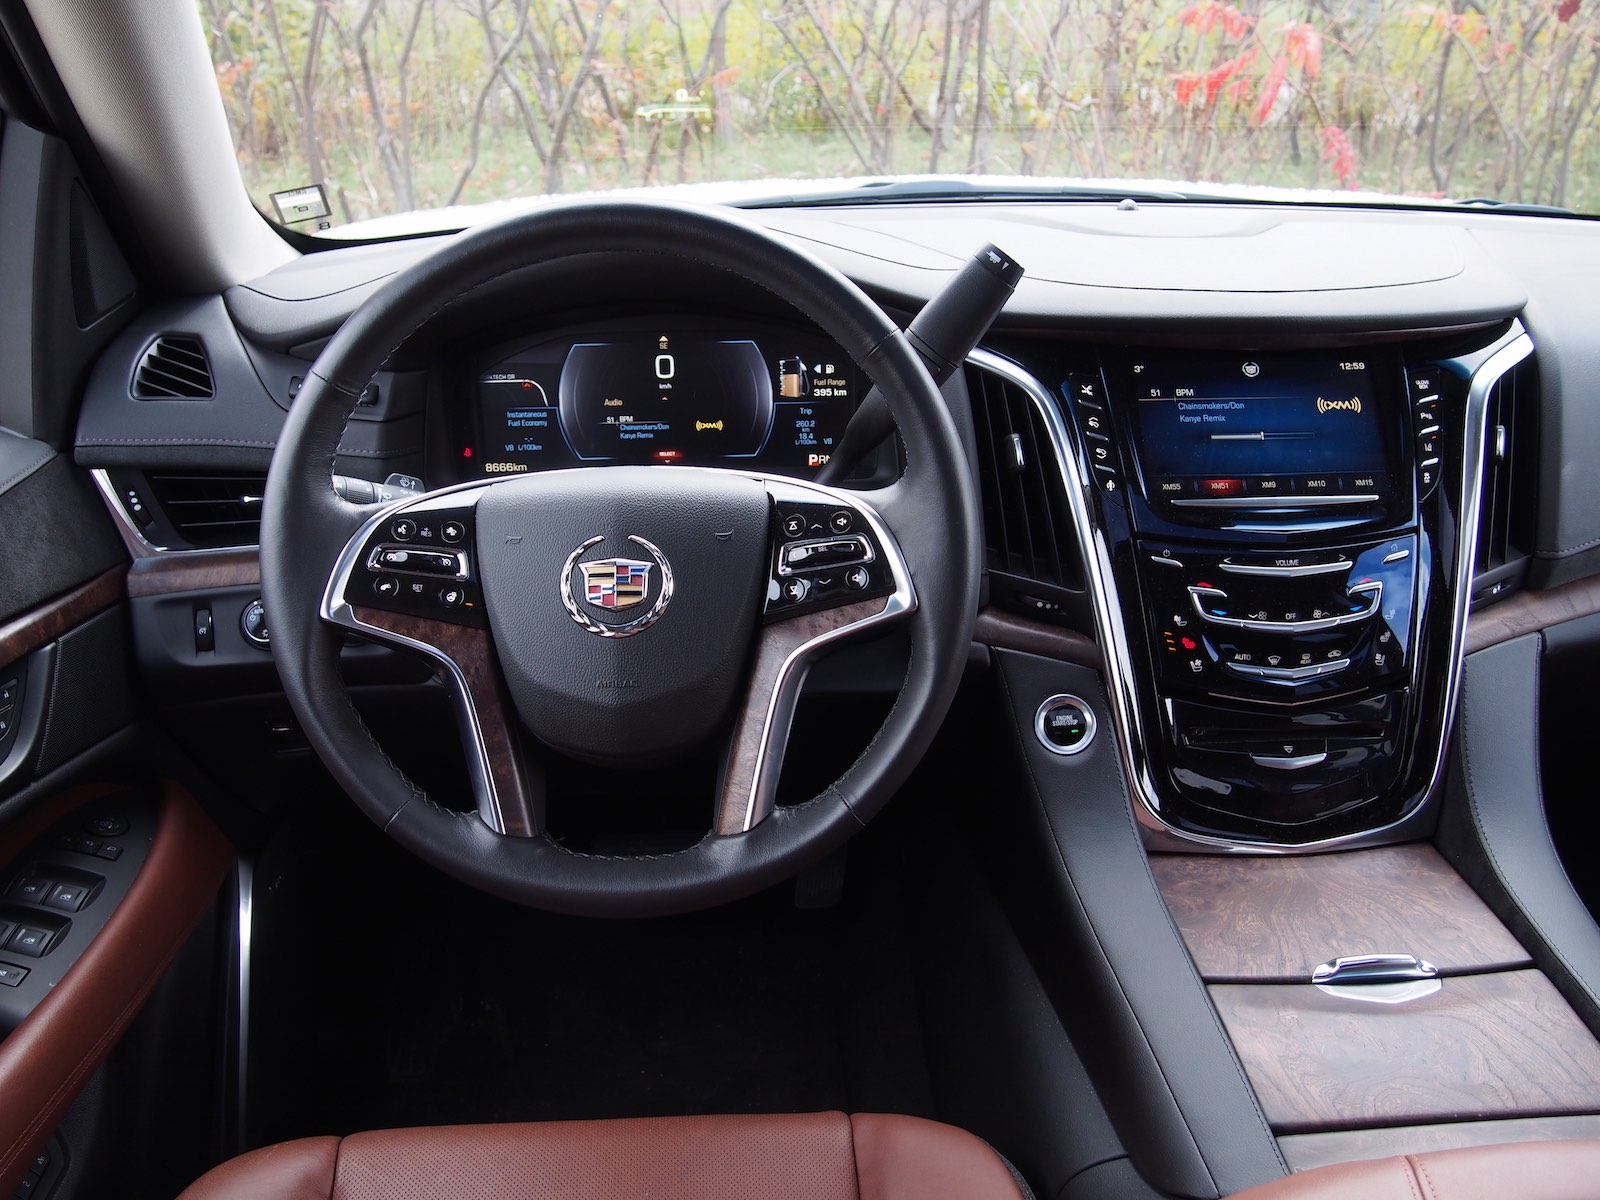 ... 2015 Cadillac Escalade ESV White Interior Leather Black Nappa ... Amazing Design